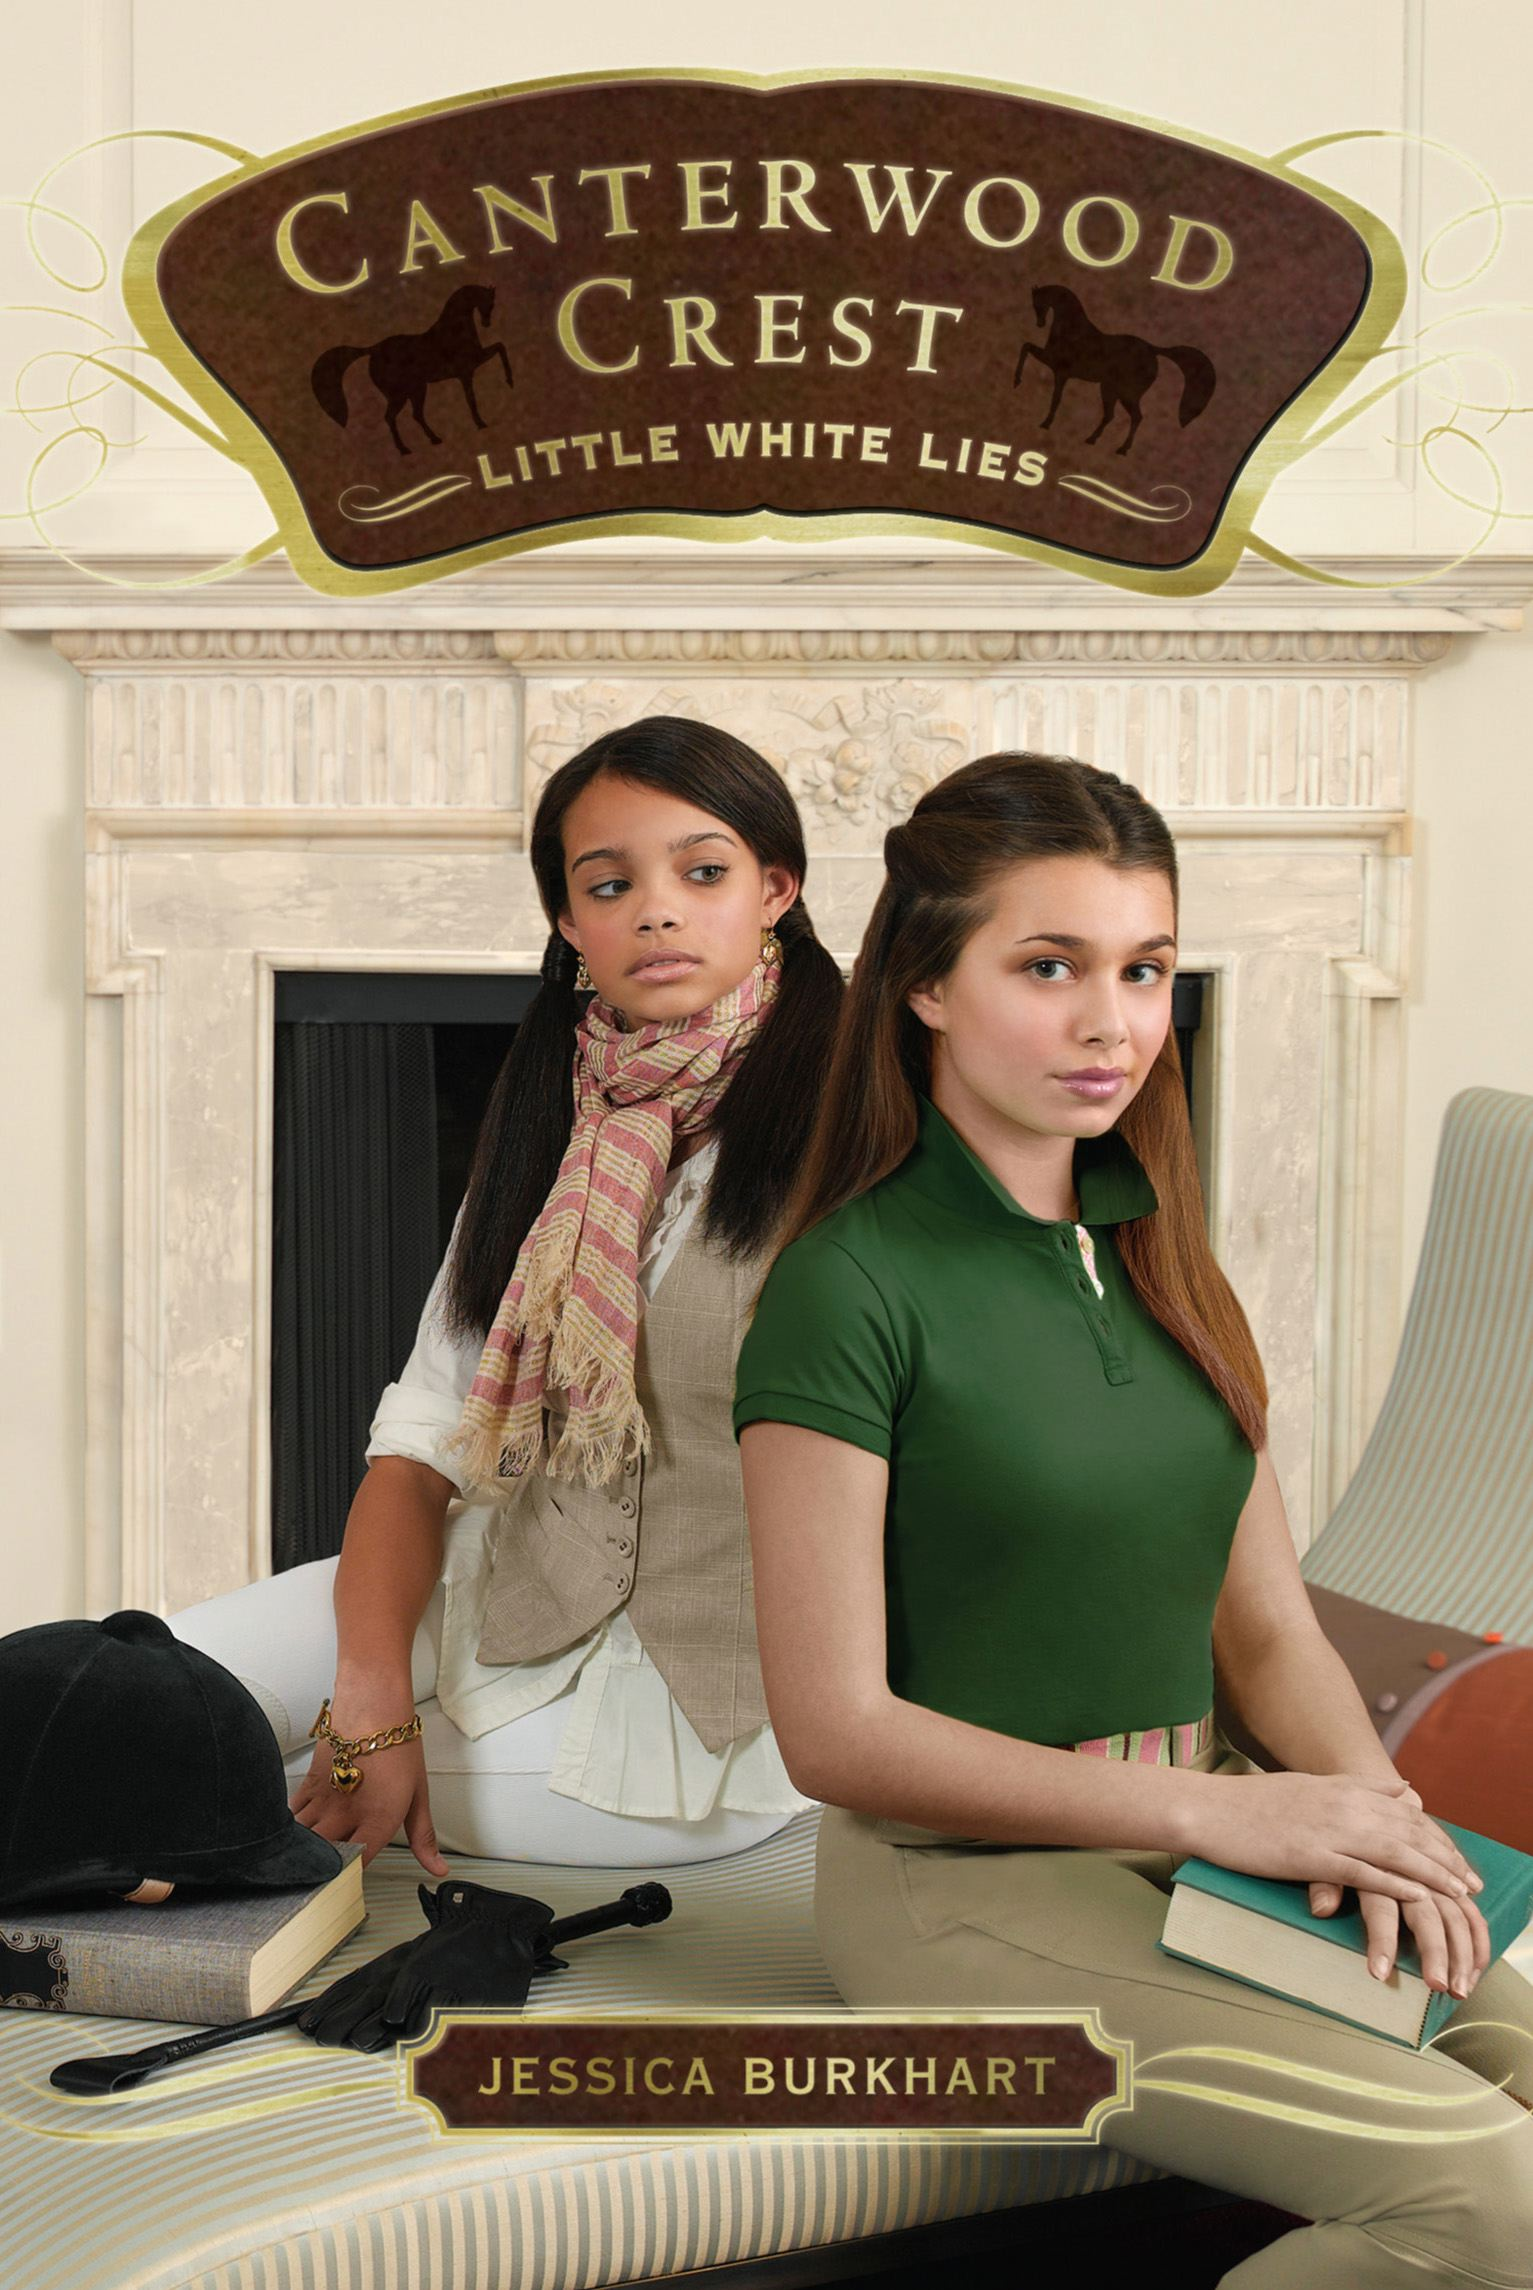 Little-white-lies-9781416990383_hr